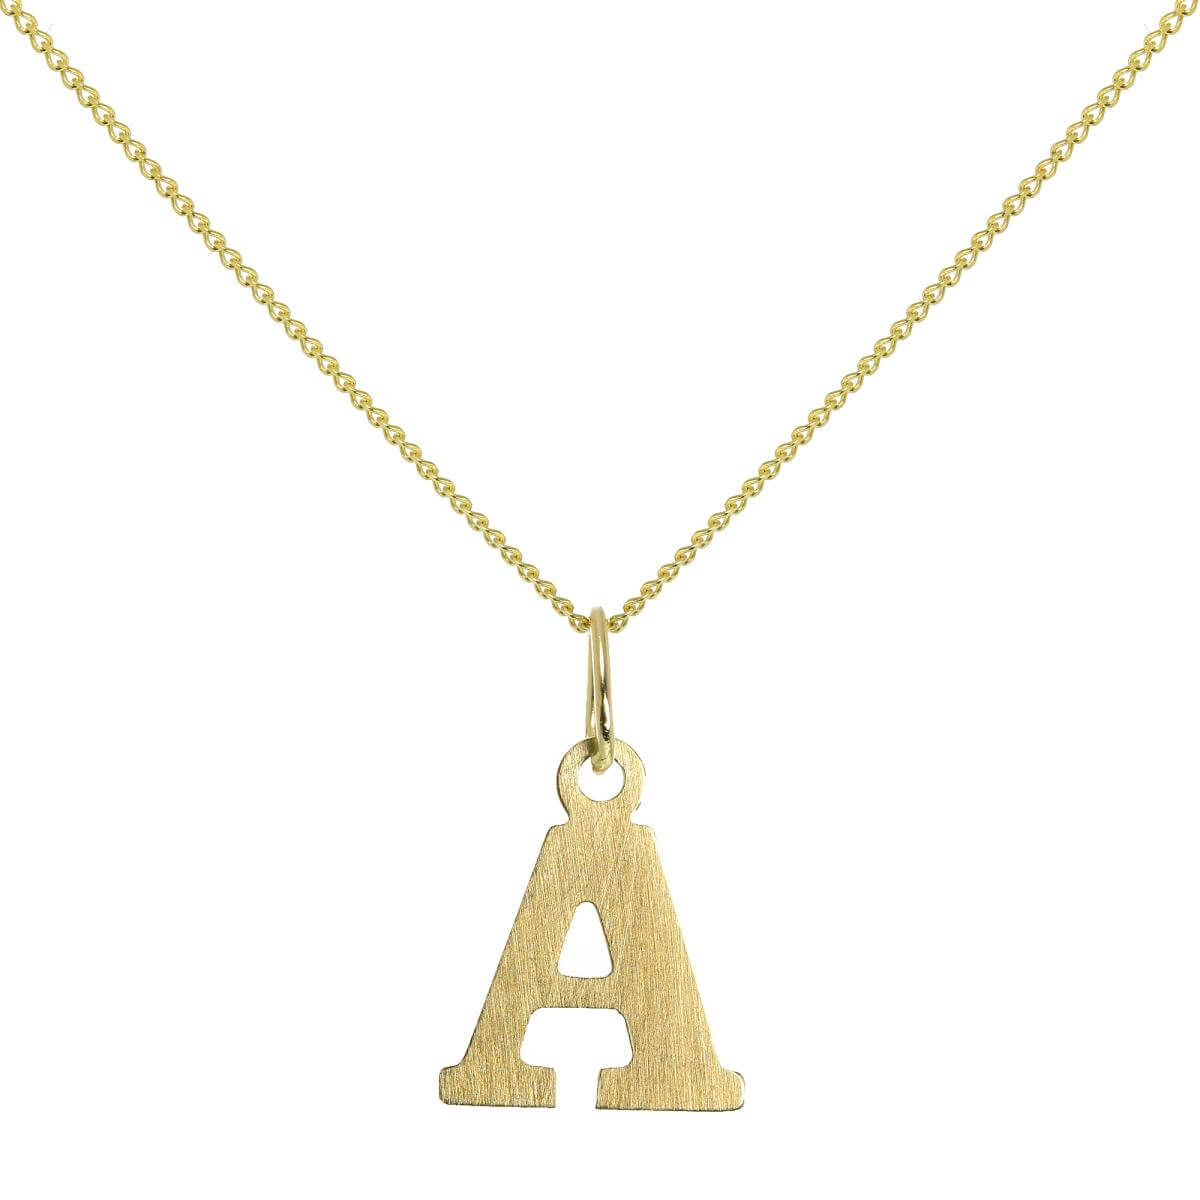 Lightweight 9ct Gold Initial Letter A Charm - 18 Inches